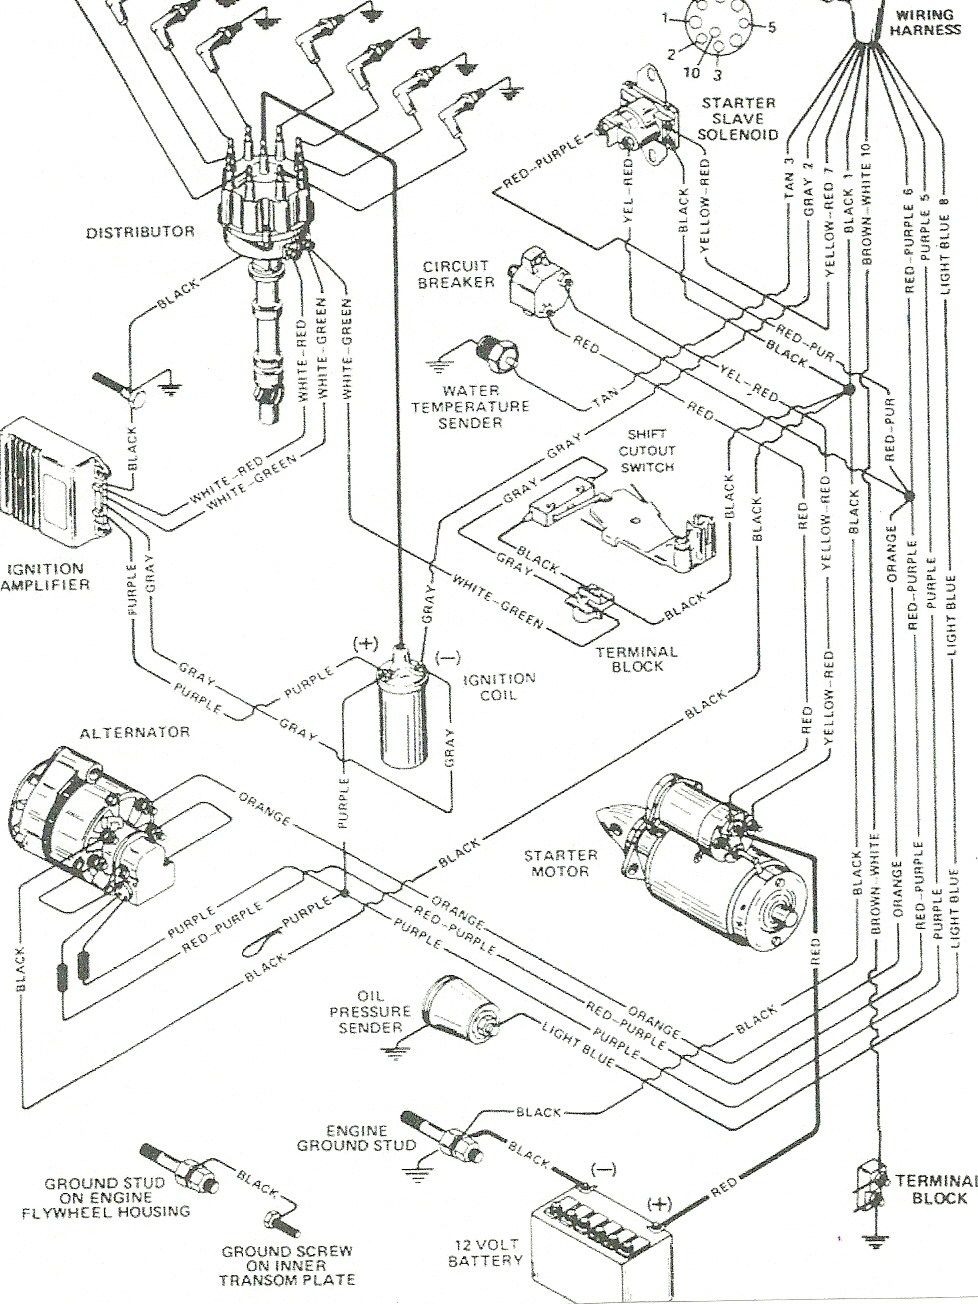 140 Mercruiser Engine Wiring Diagram - DIY Wiring Diagrams •